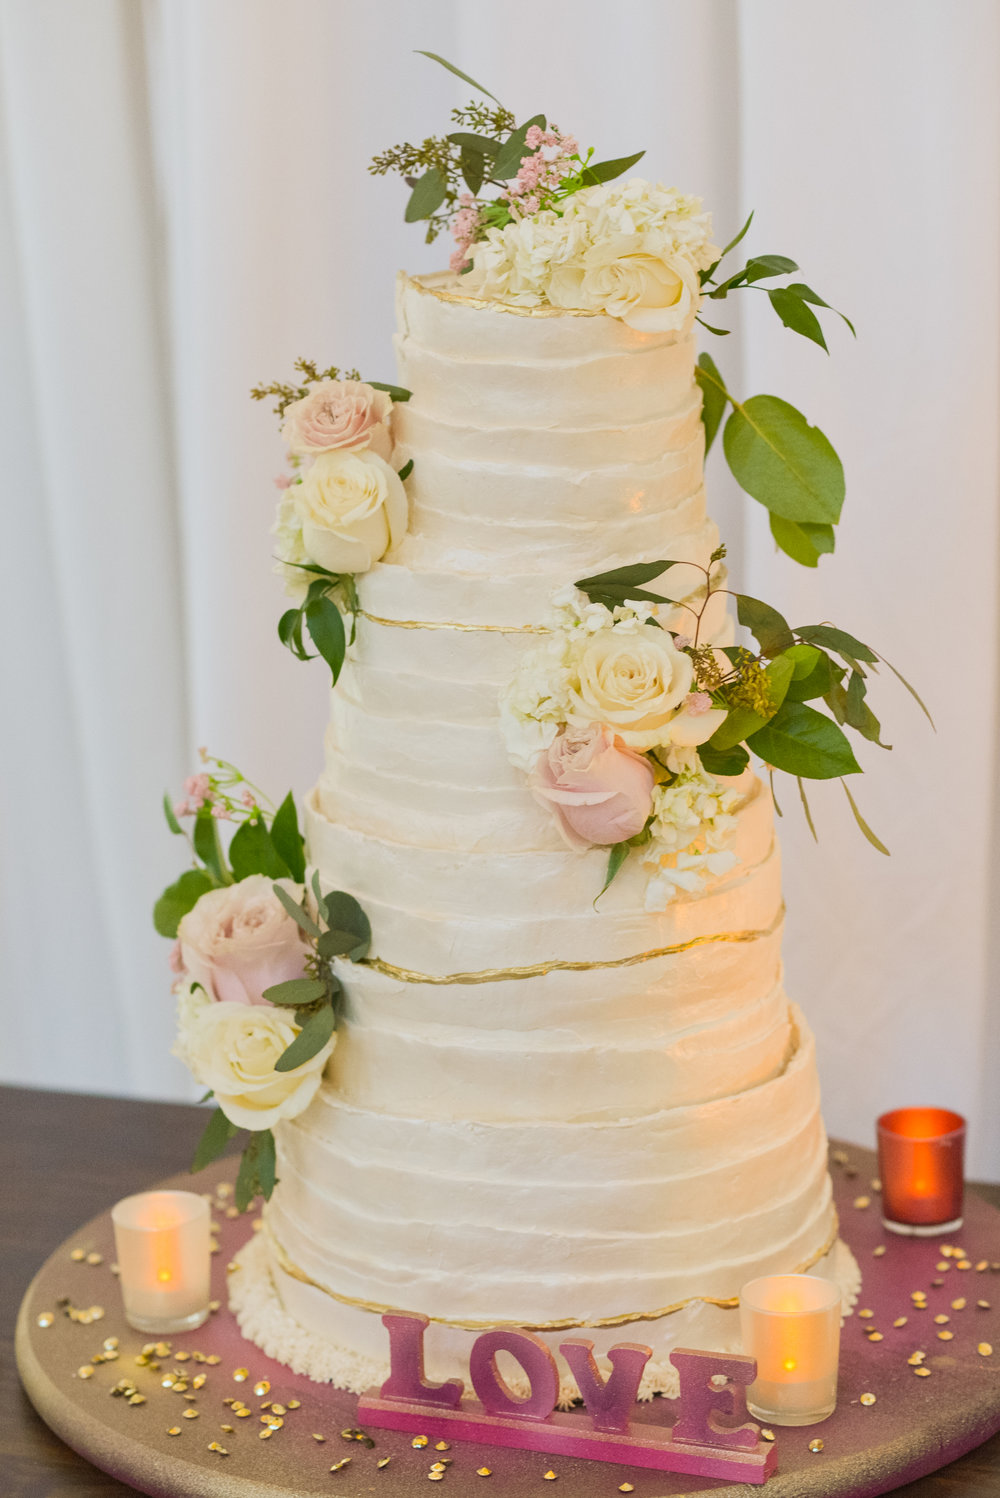 Simple wedding cake design with flowers for Pittsburgh wedding planned by Exhale Events. Find more inspiration at exhale-events.com!